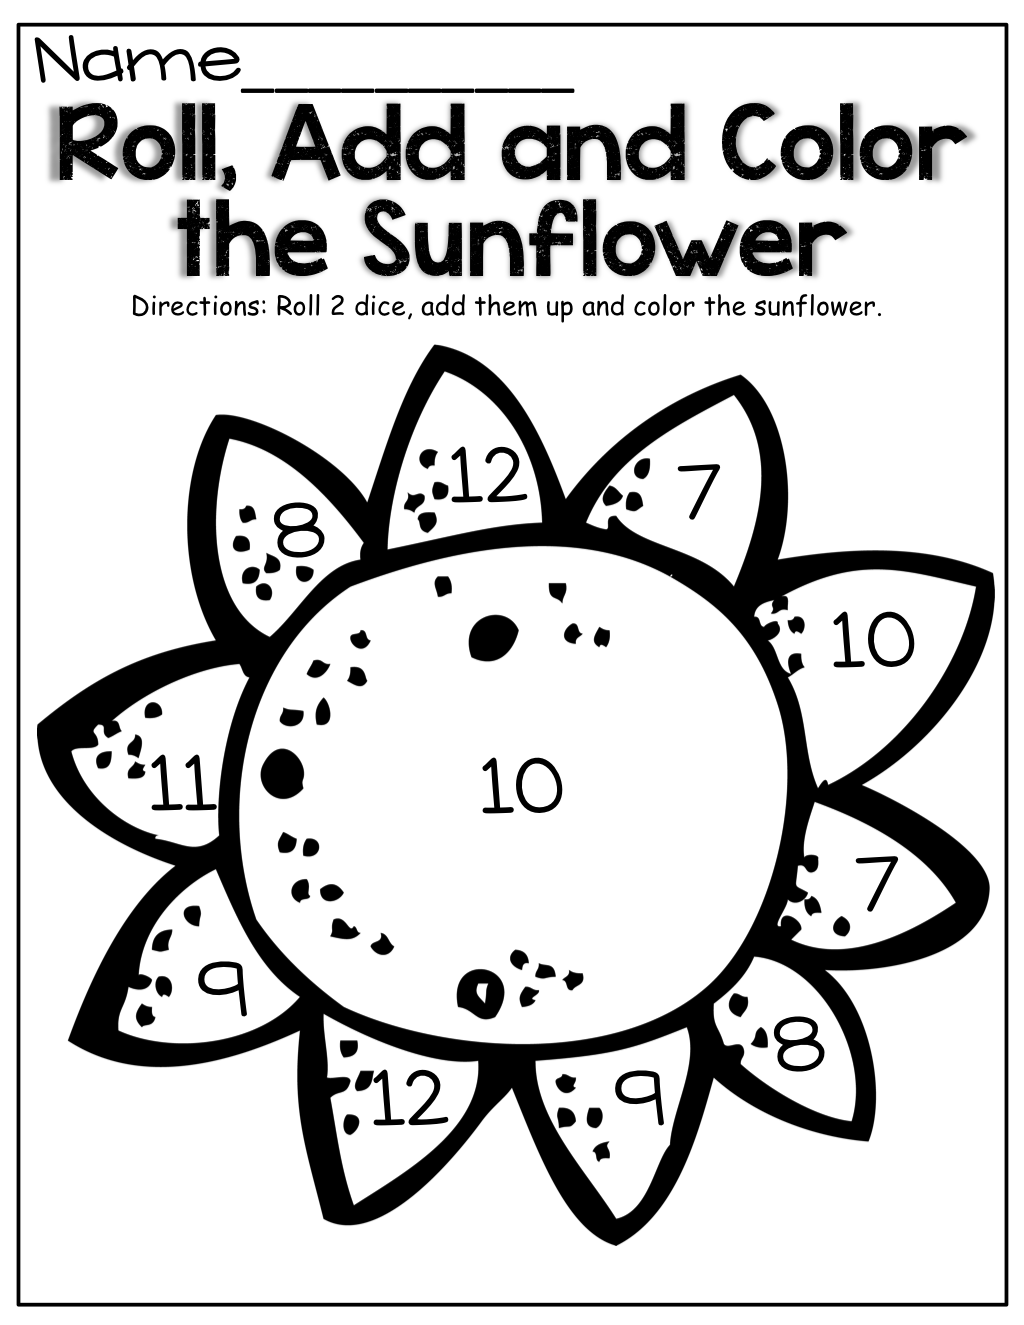 Roll 2 Dice Add Them Up And Color The Sunflower Fun Way